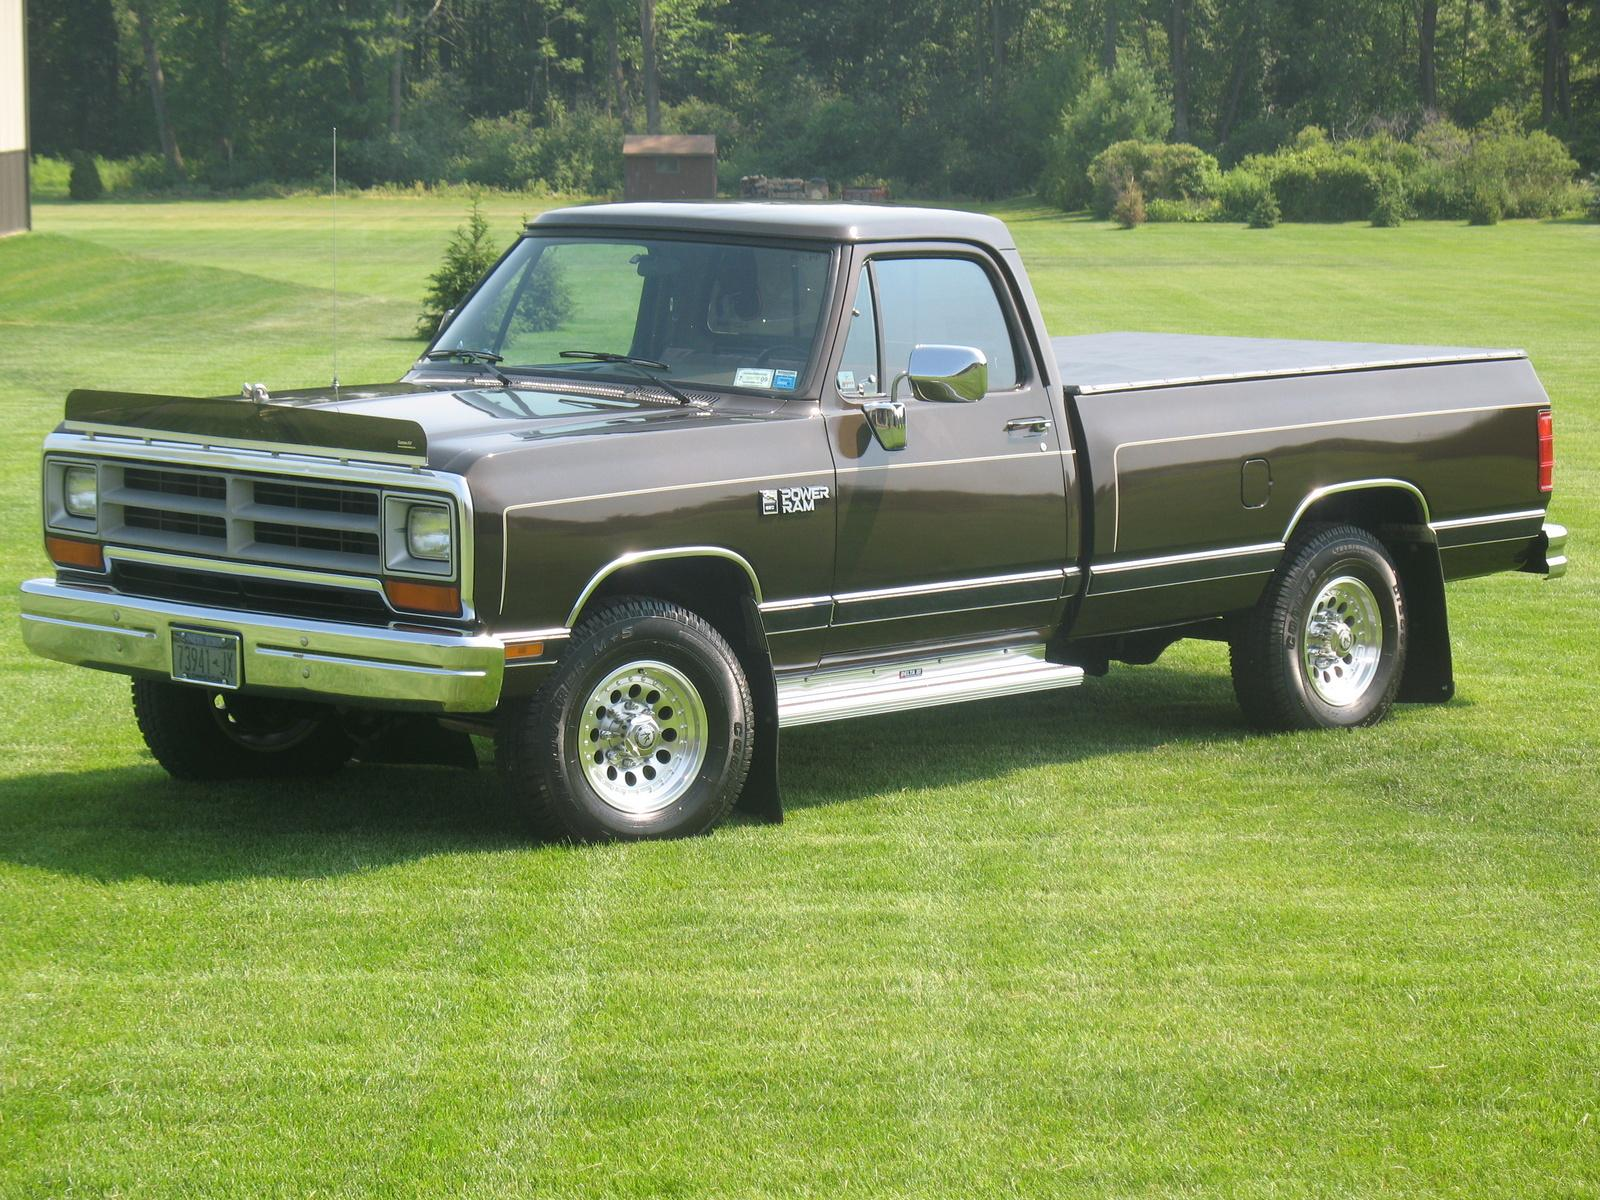 1990 Dodge Ram 150 Information And Photos Zombiedrive